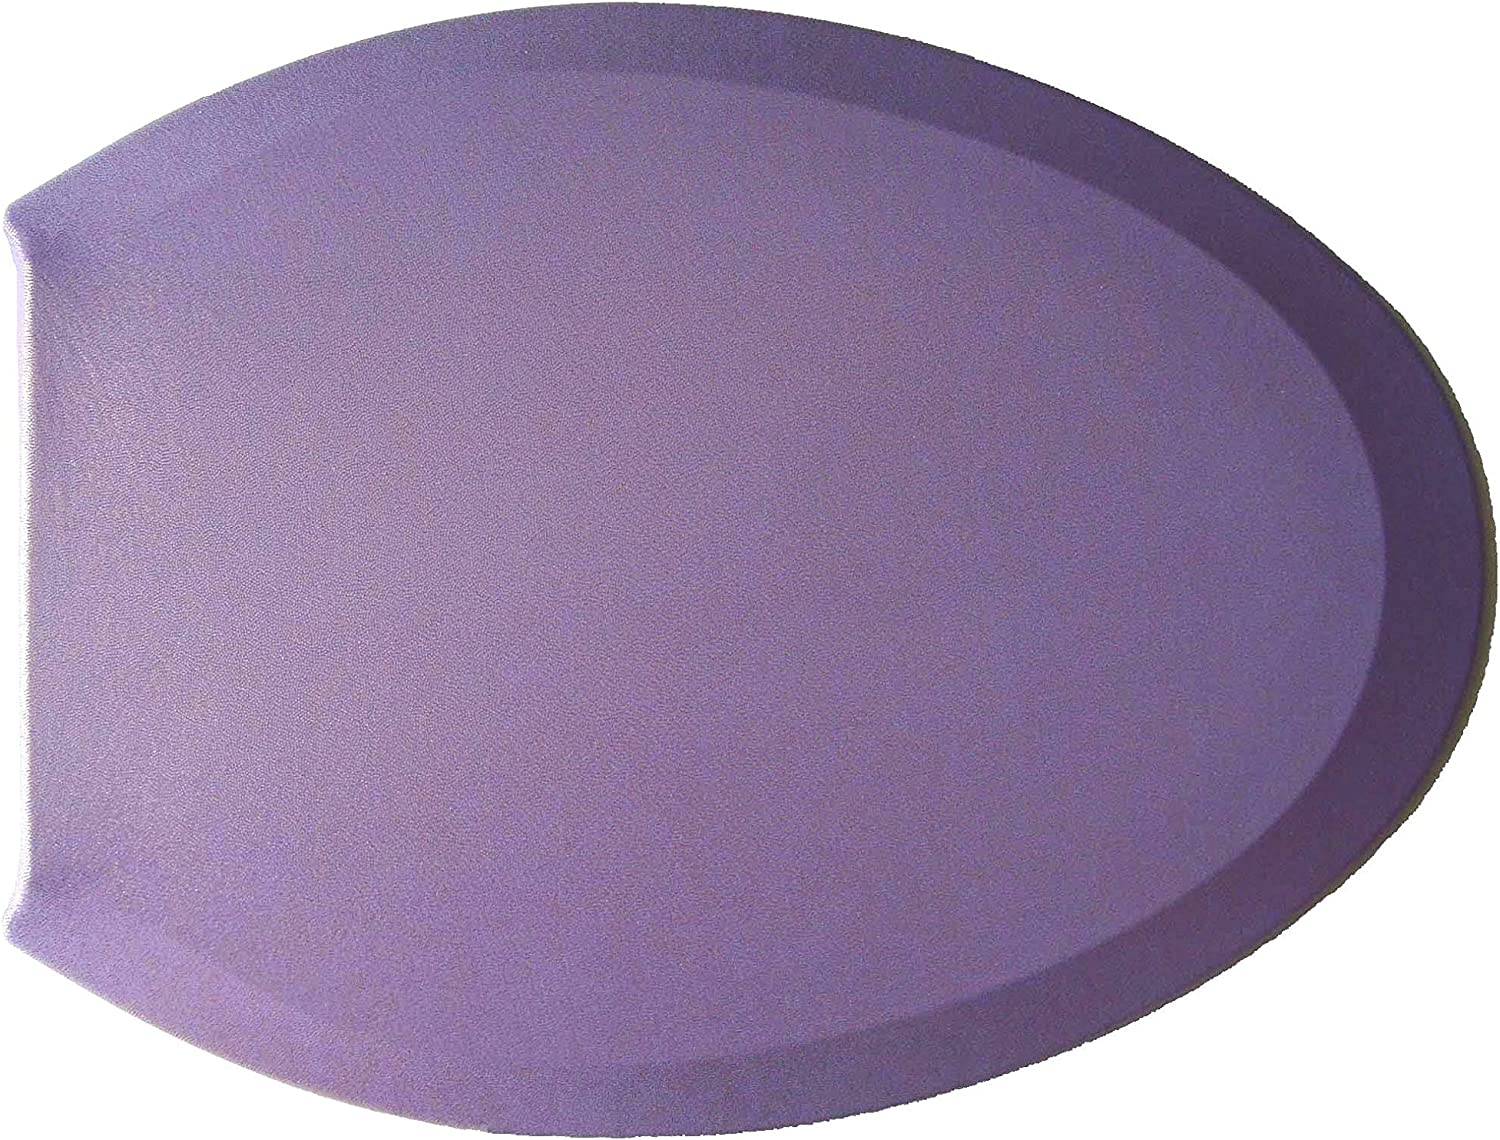 Lavender Purple Handmade in USA Special Matte Edition of Fabric Cover for a lid Toilet SEAT for Round /& Elongated Models